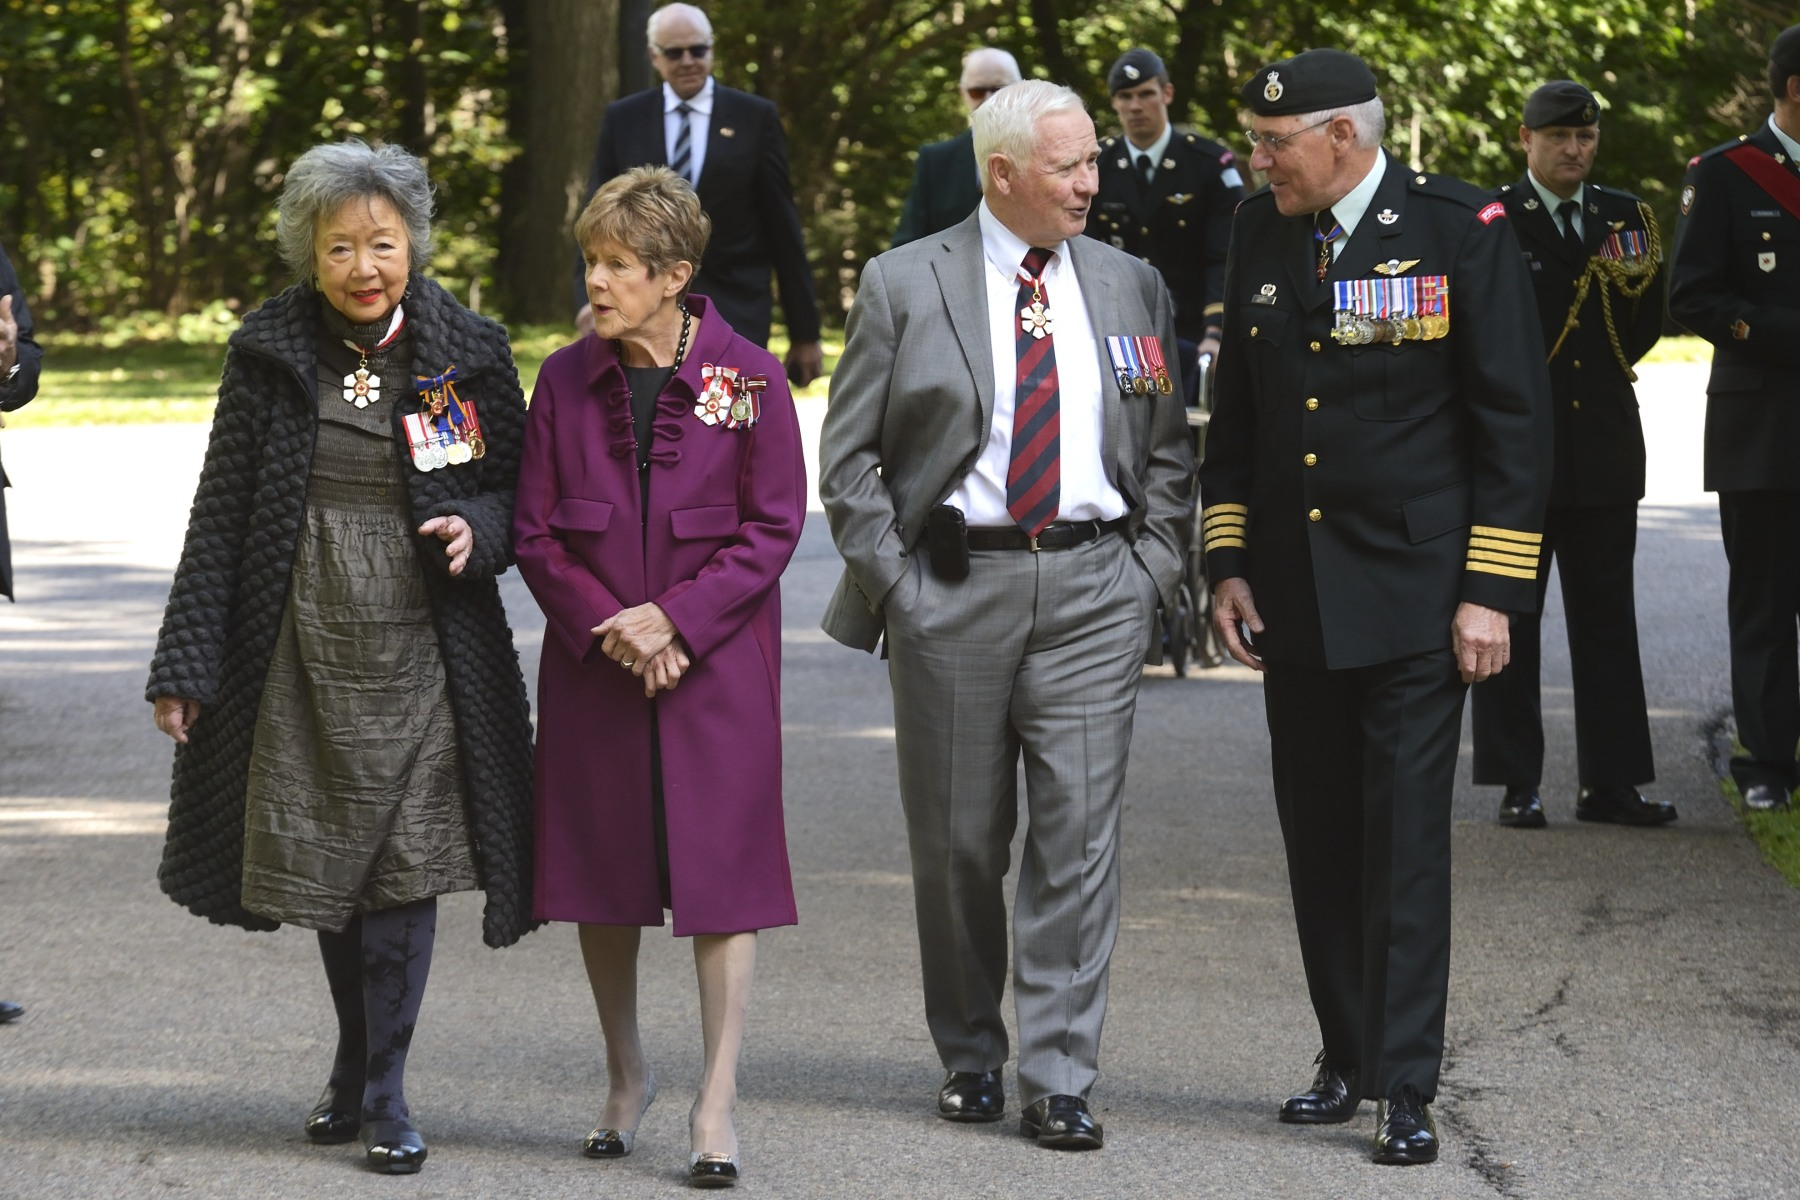 Mrs. Clarkson, joined by the Governor General, his spouse, and Lieutenant-General Crabbe, then proceeded to the grounds of Rideau Hall to plant a commemorative maple tree in honour of the regiment's 100 years of service.